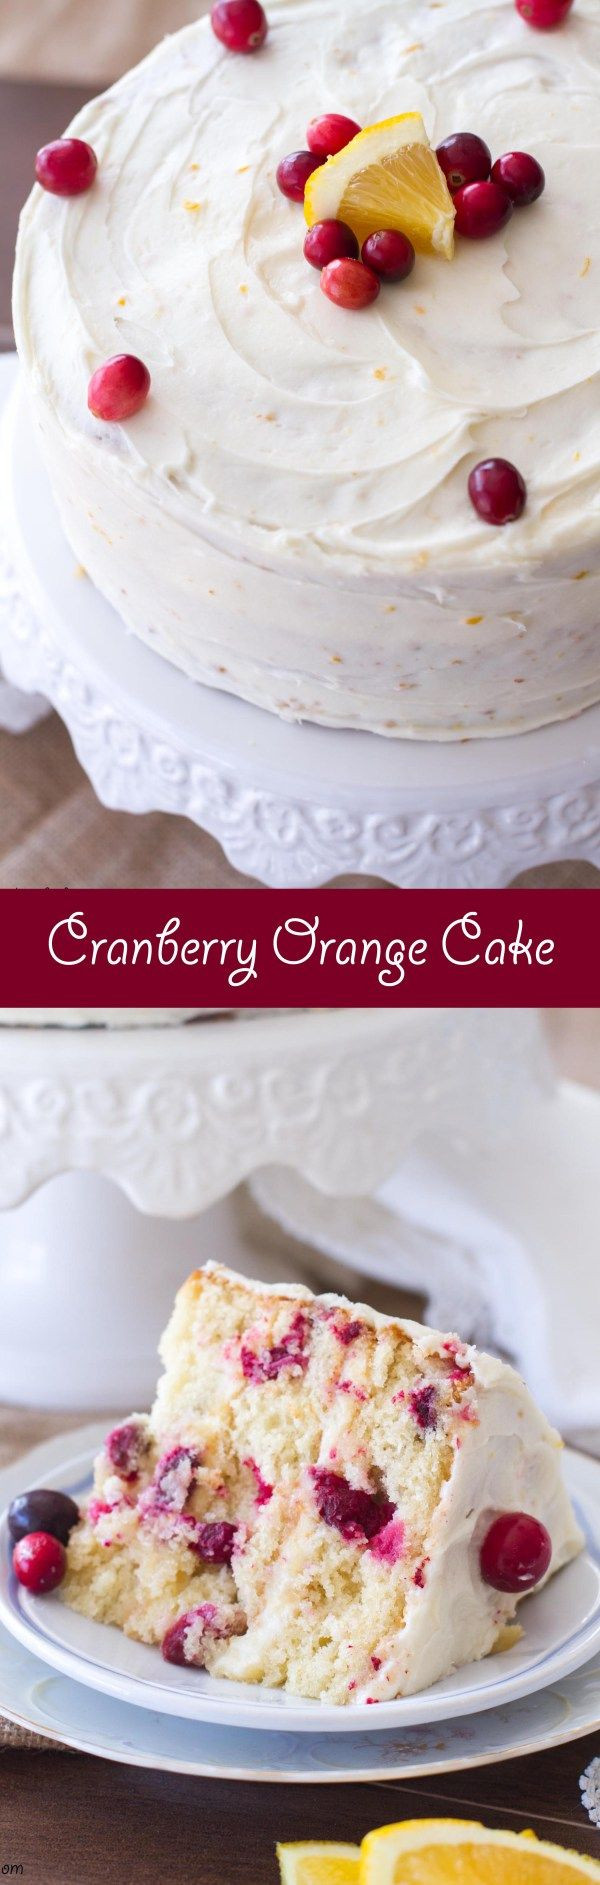 Christmas Cakes Flavors  17 of 2017 s best Cake Flavors ideas on Pinterest